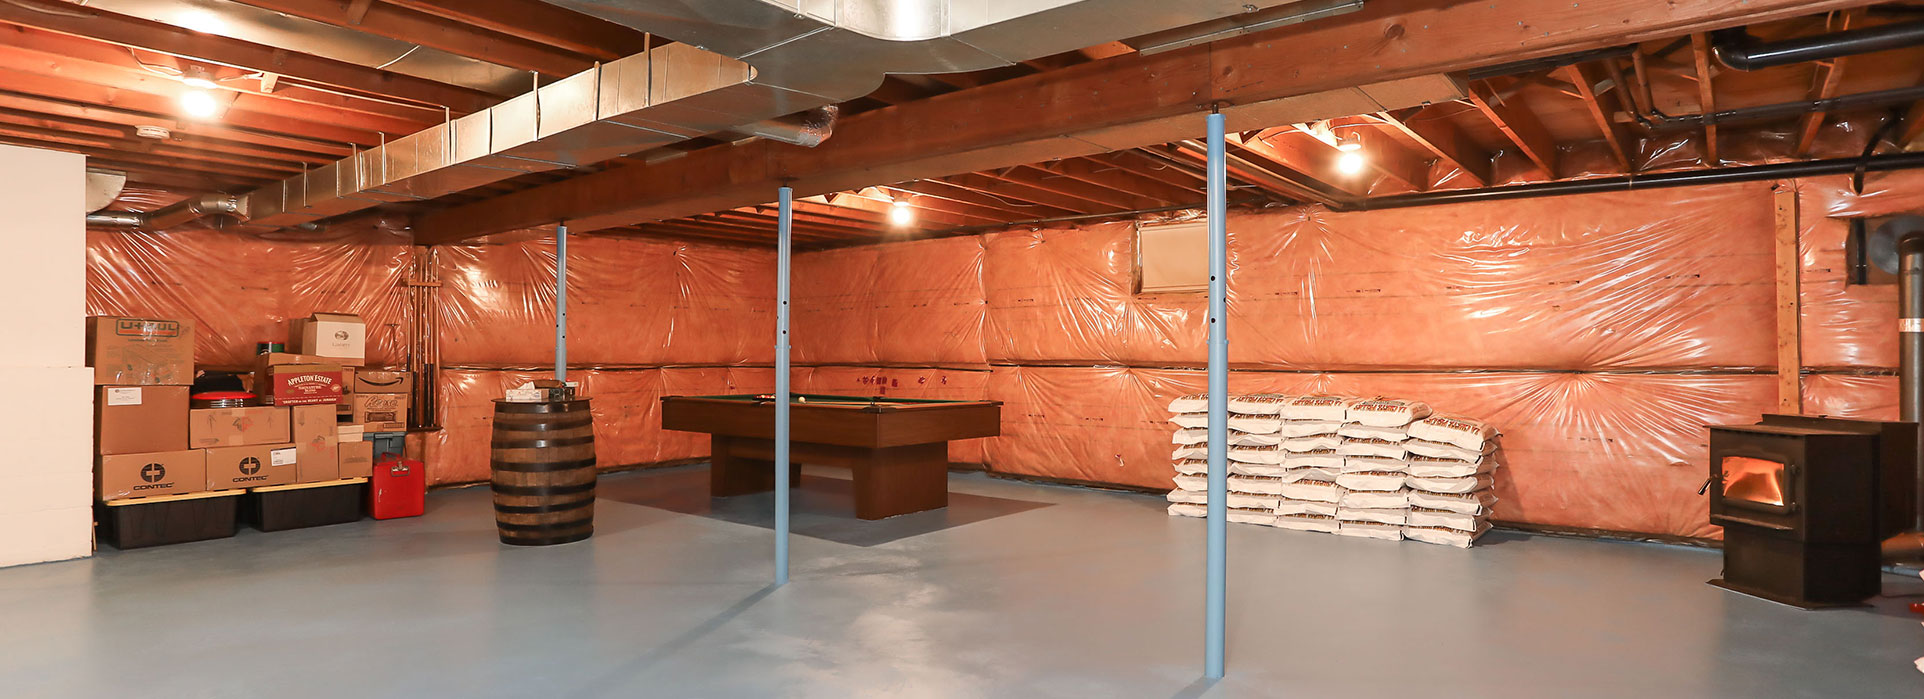 5870 Concession 2 - Basement - Cripps Realty